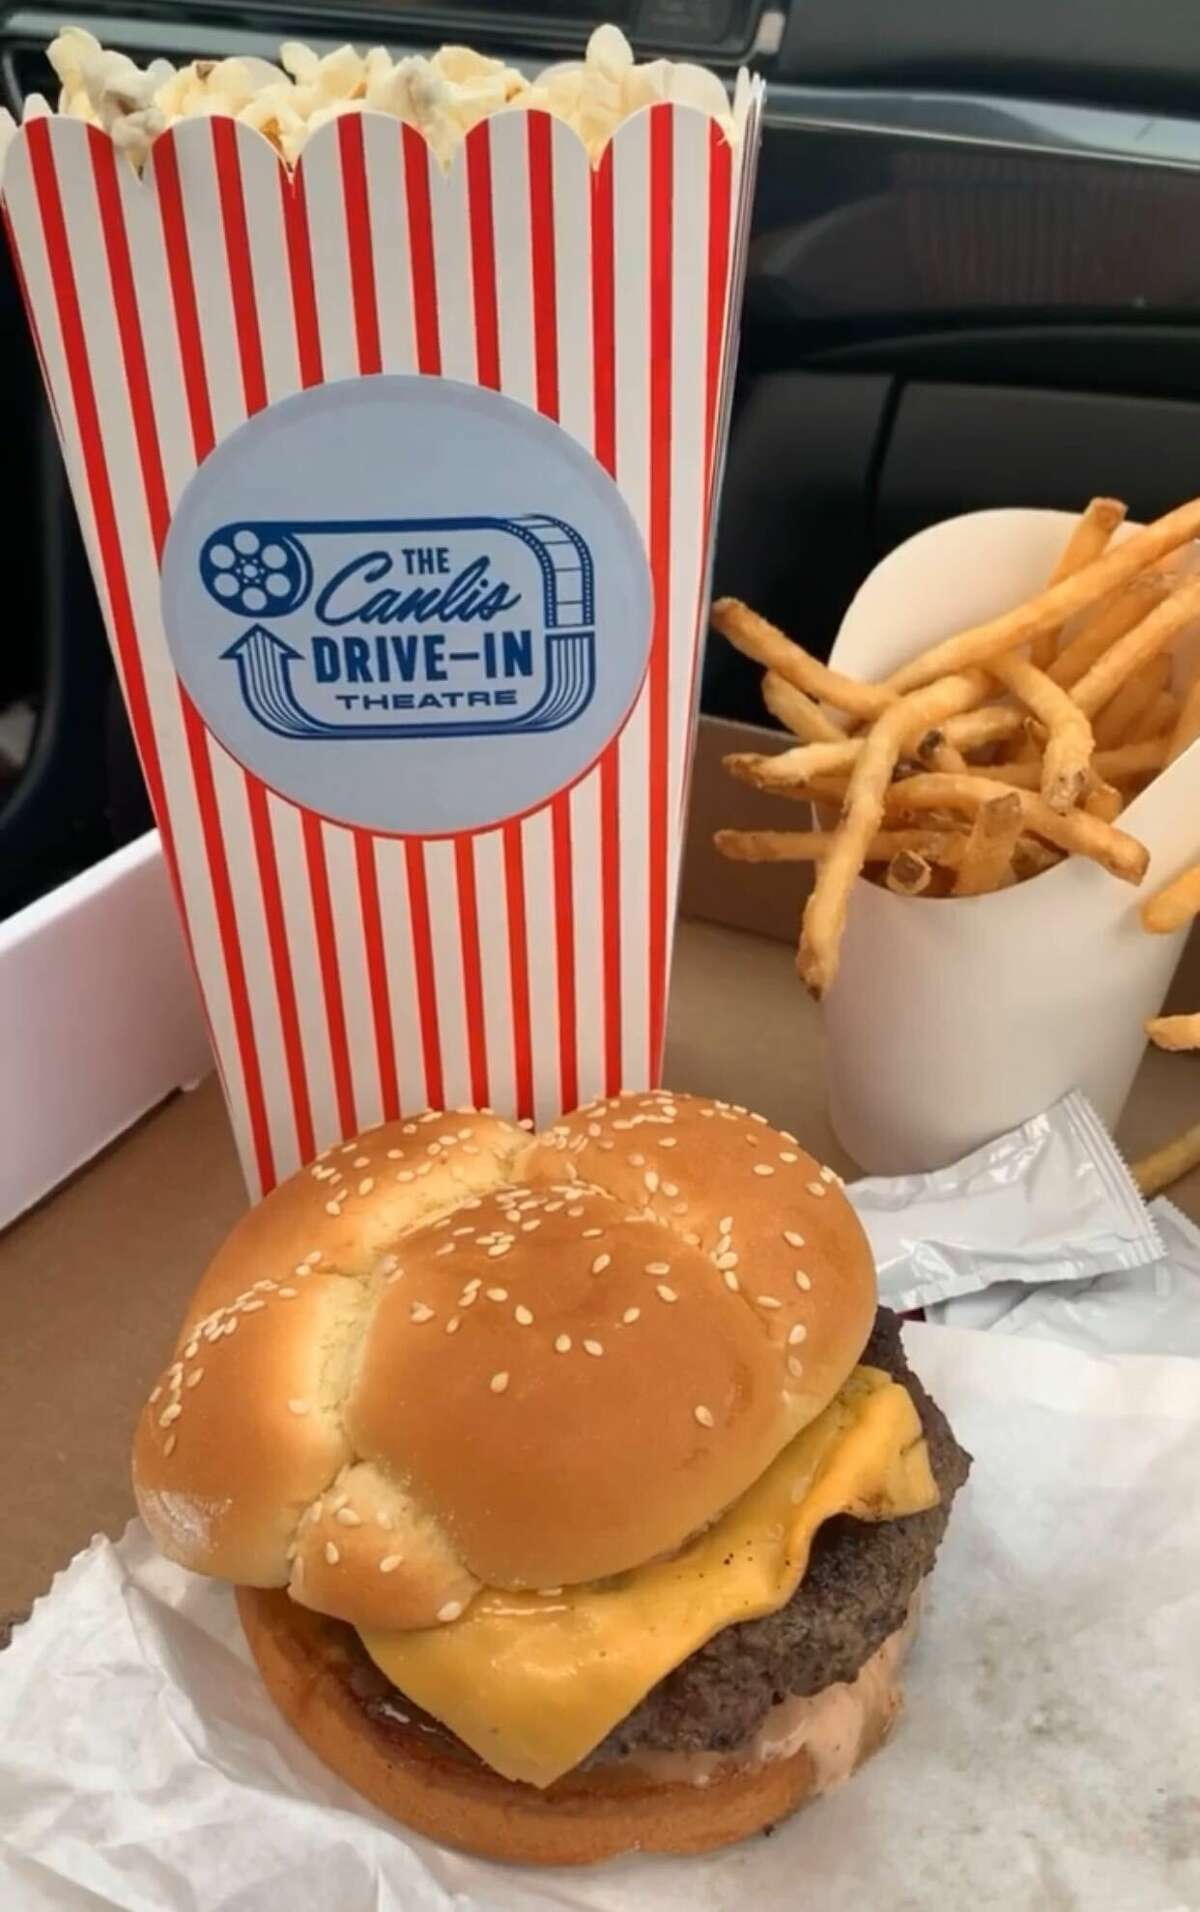 Menu items from the Canlis drive-in theater on June 23, 2020.